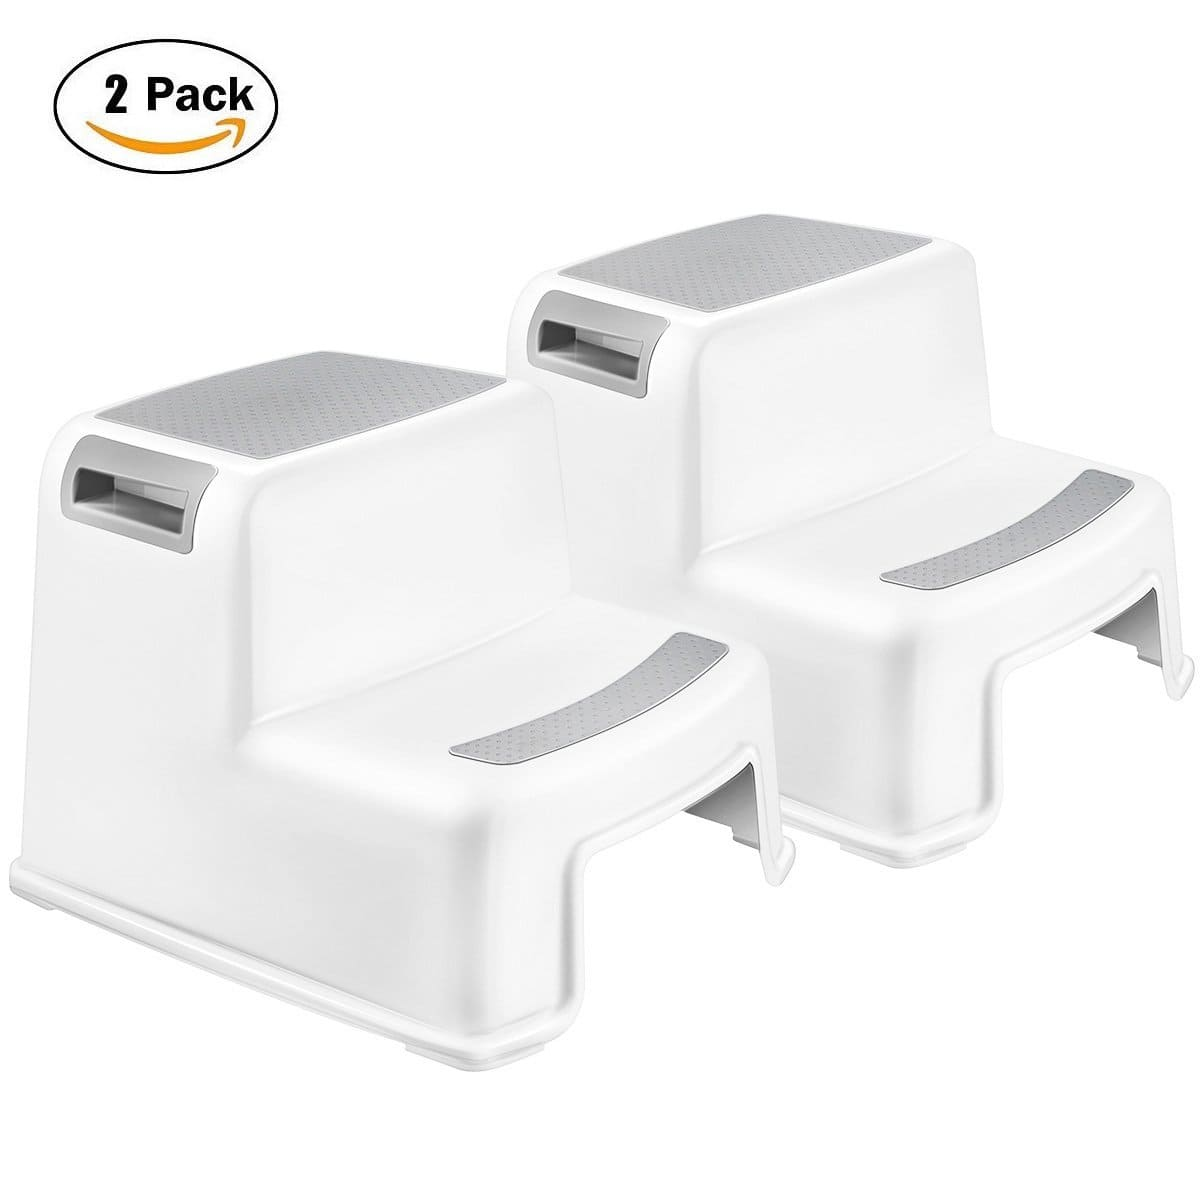 40% OFF - Dual Height Two Step Stool for Kids Toddler's Stools for Toilet Potty Training - Non-Slip Safety (2 Pack) - $21.59